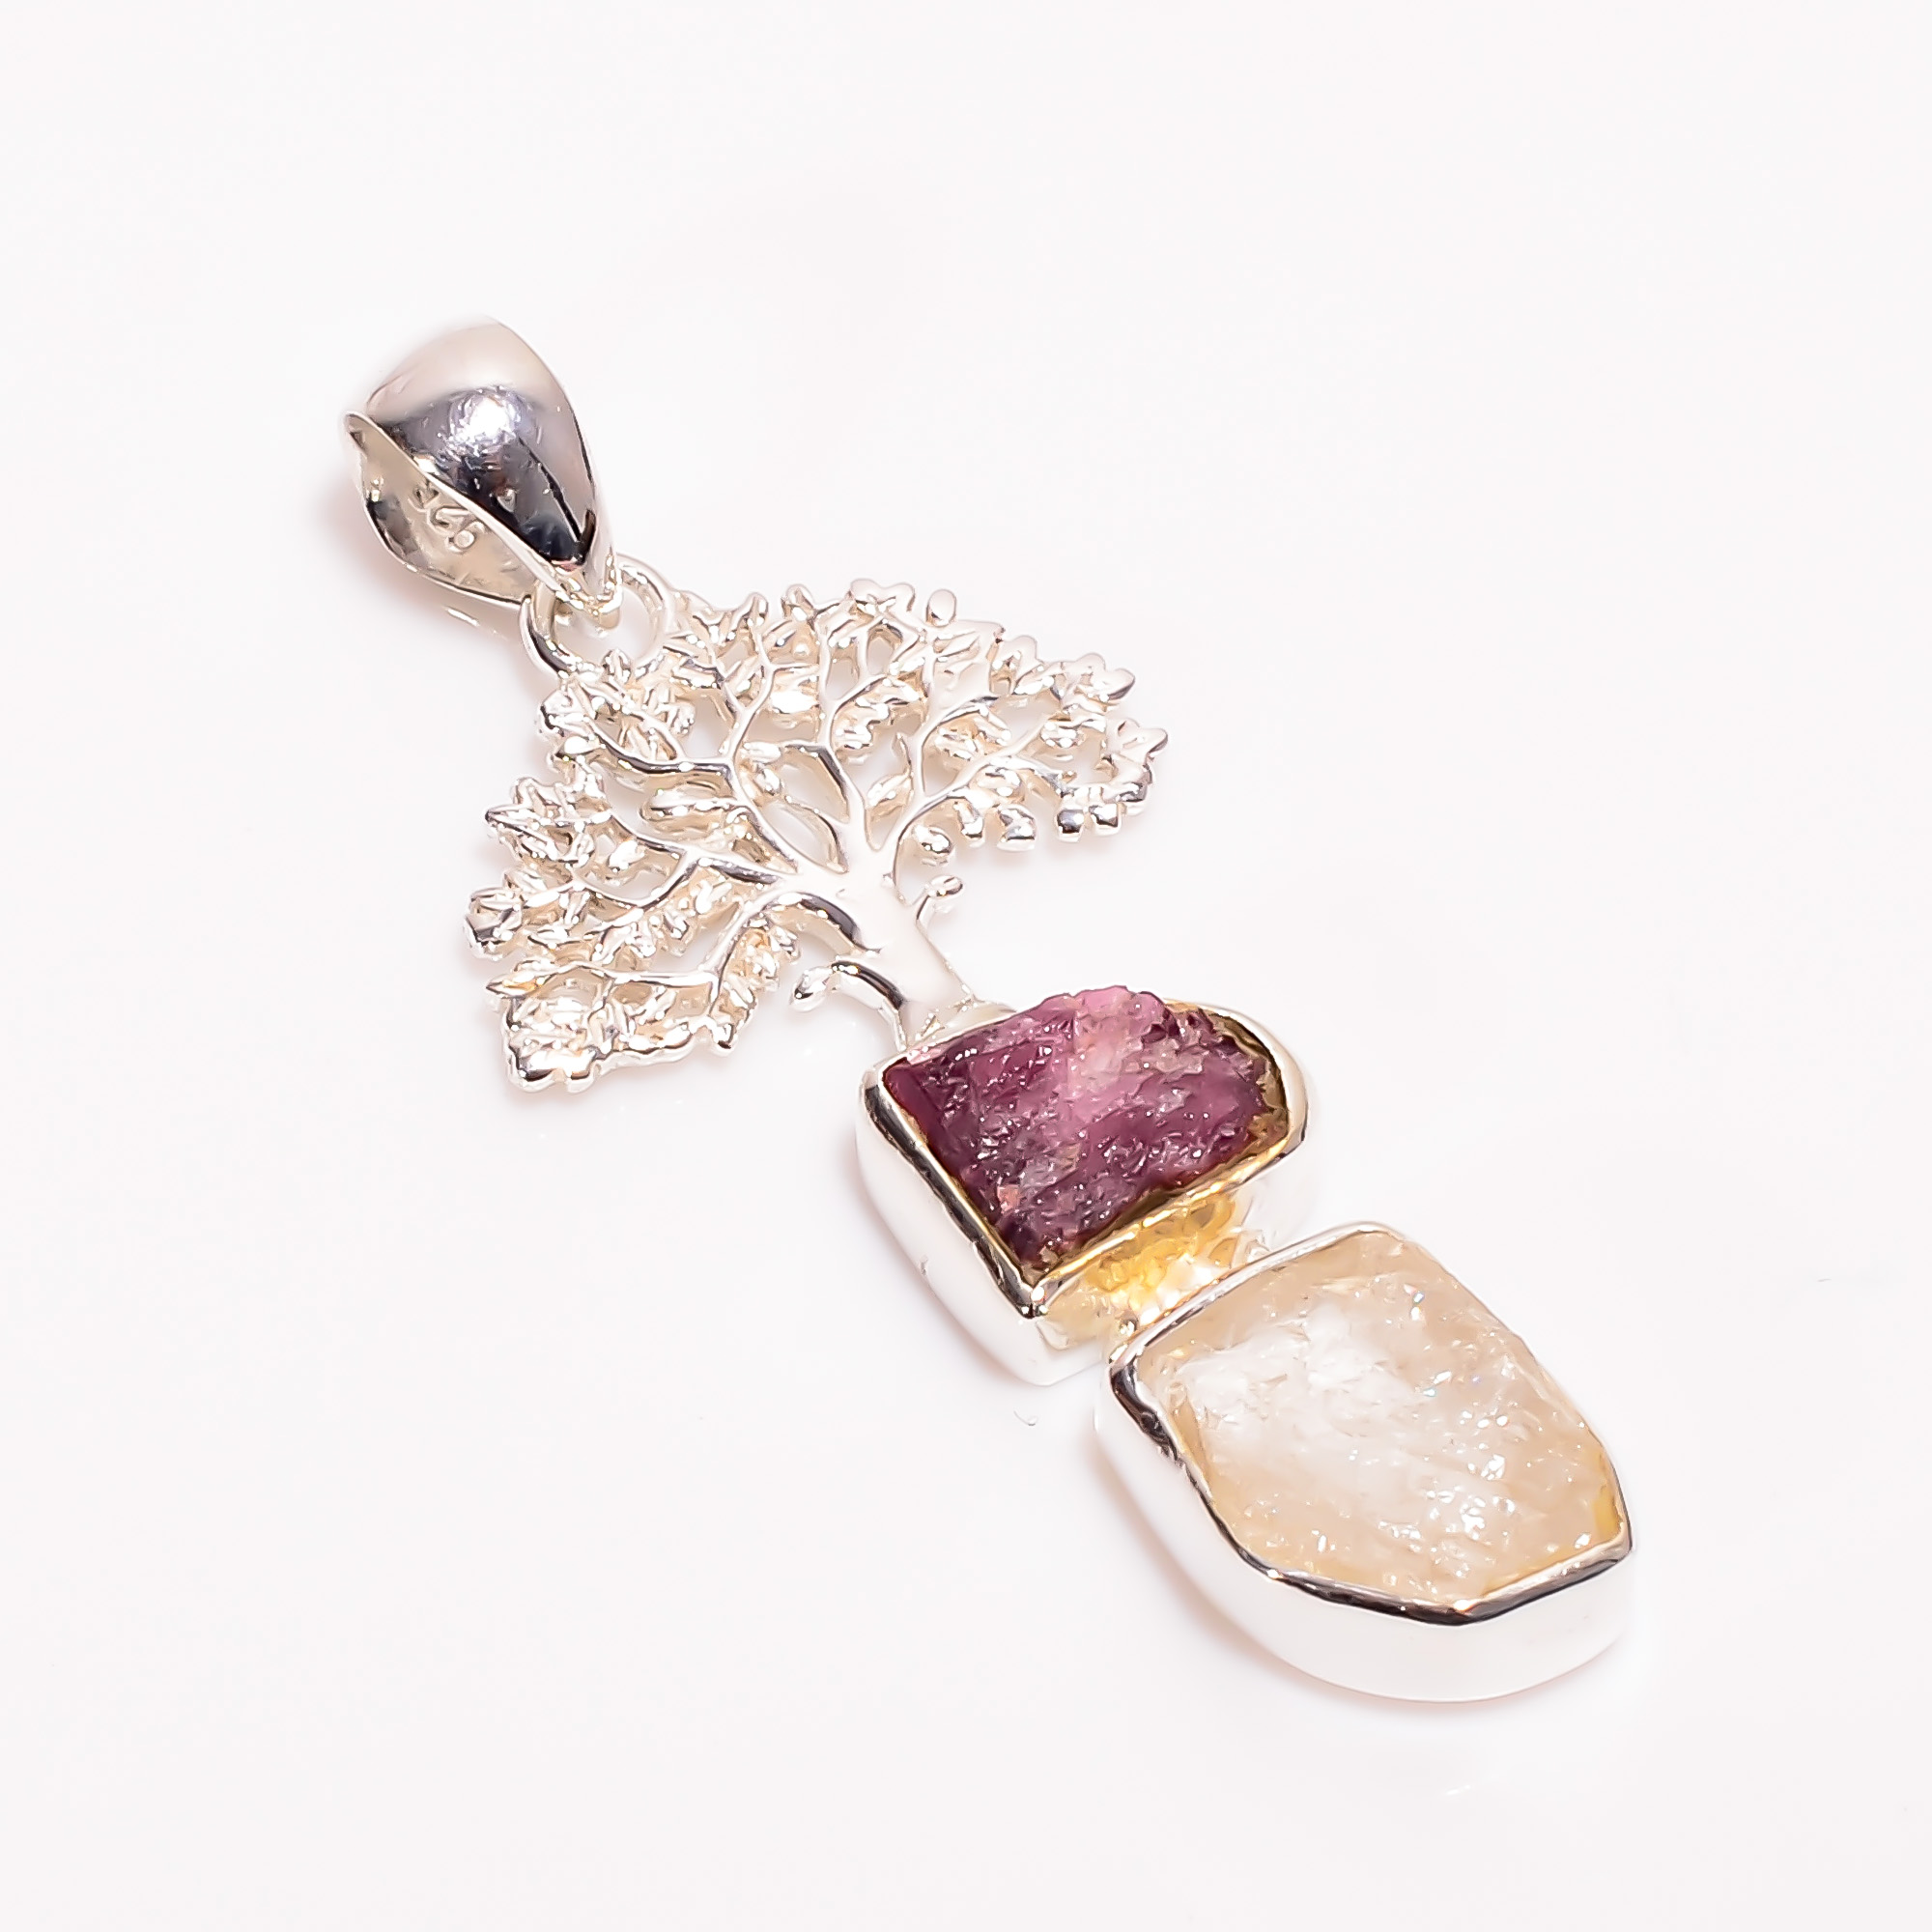 Natural Raw Pink Tourmaline Herkimer Diamond 925 Sterling Silver Pendant